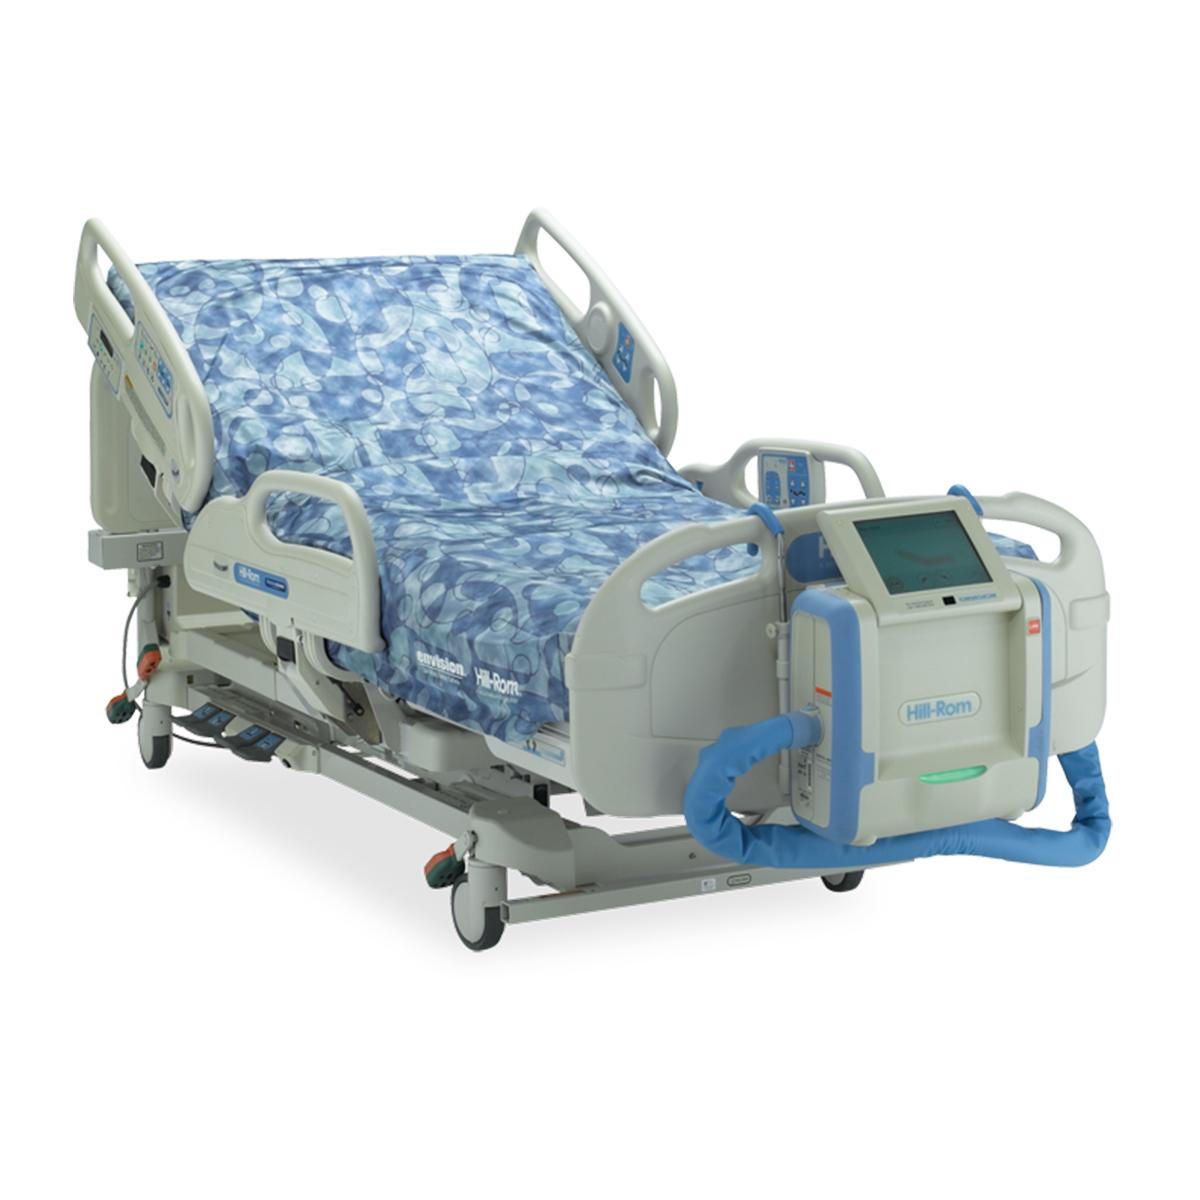 Envision® E700 Therapy Surface diagonal view in bed configuration